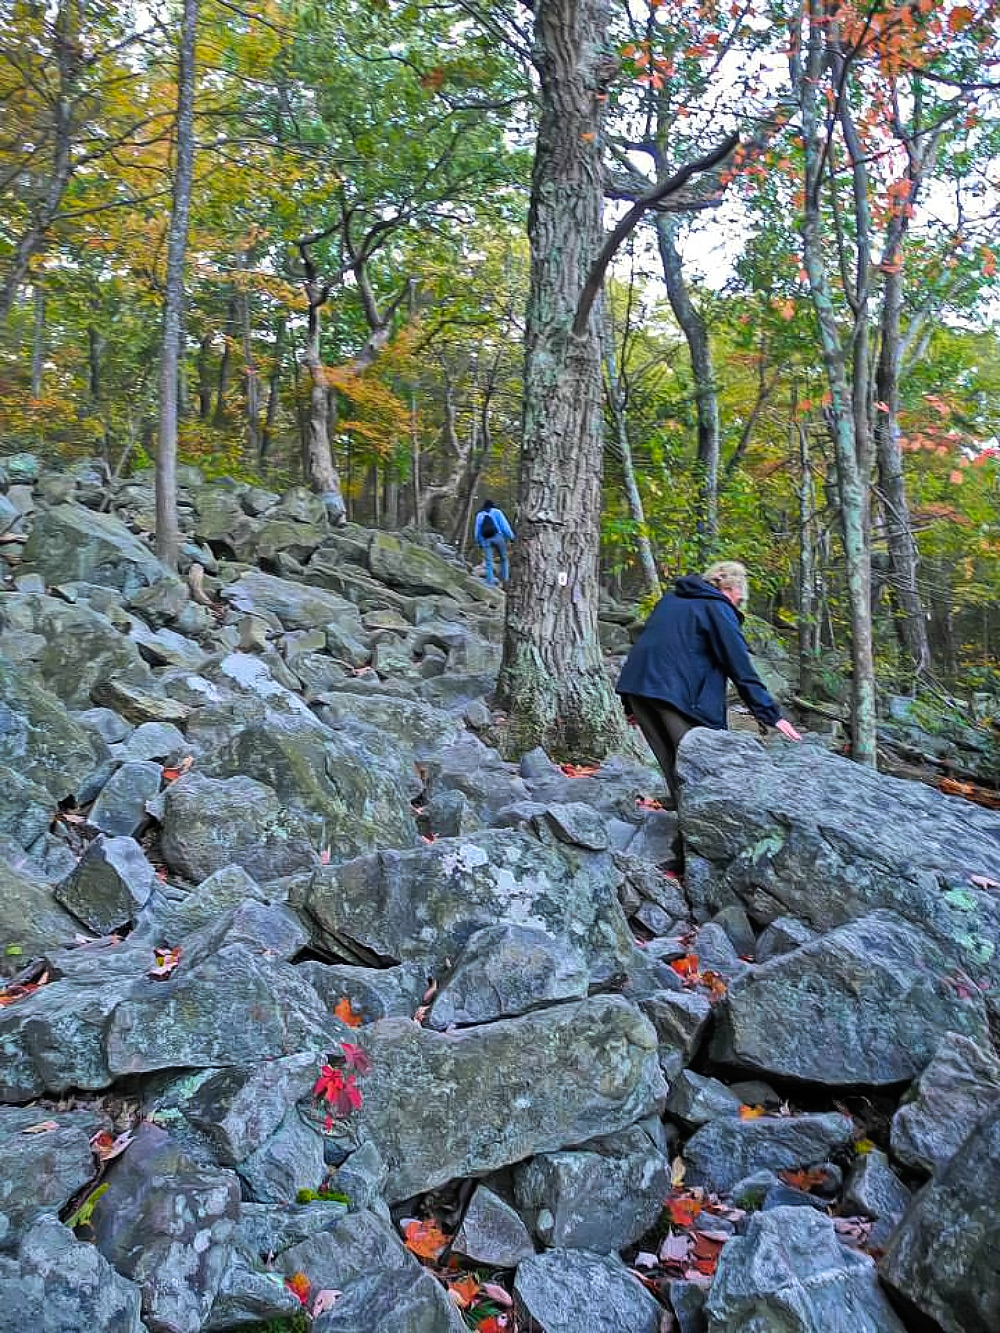 Mount Tammany trail that looks like a pile of rocks.